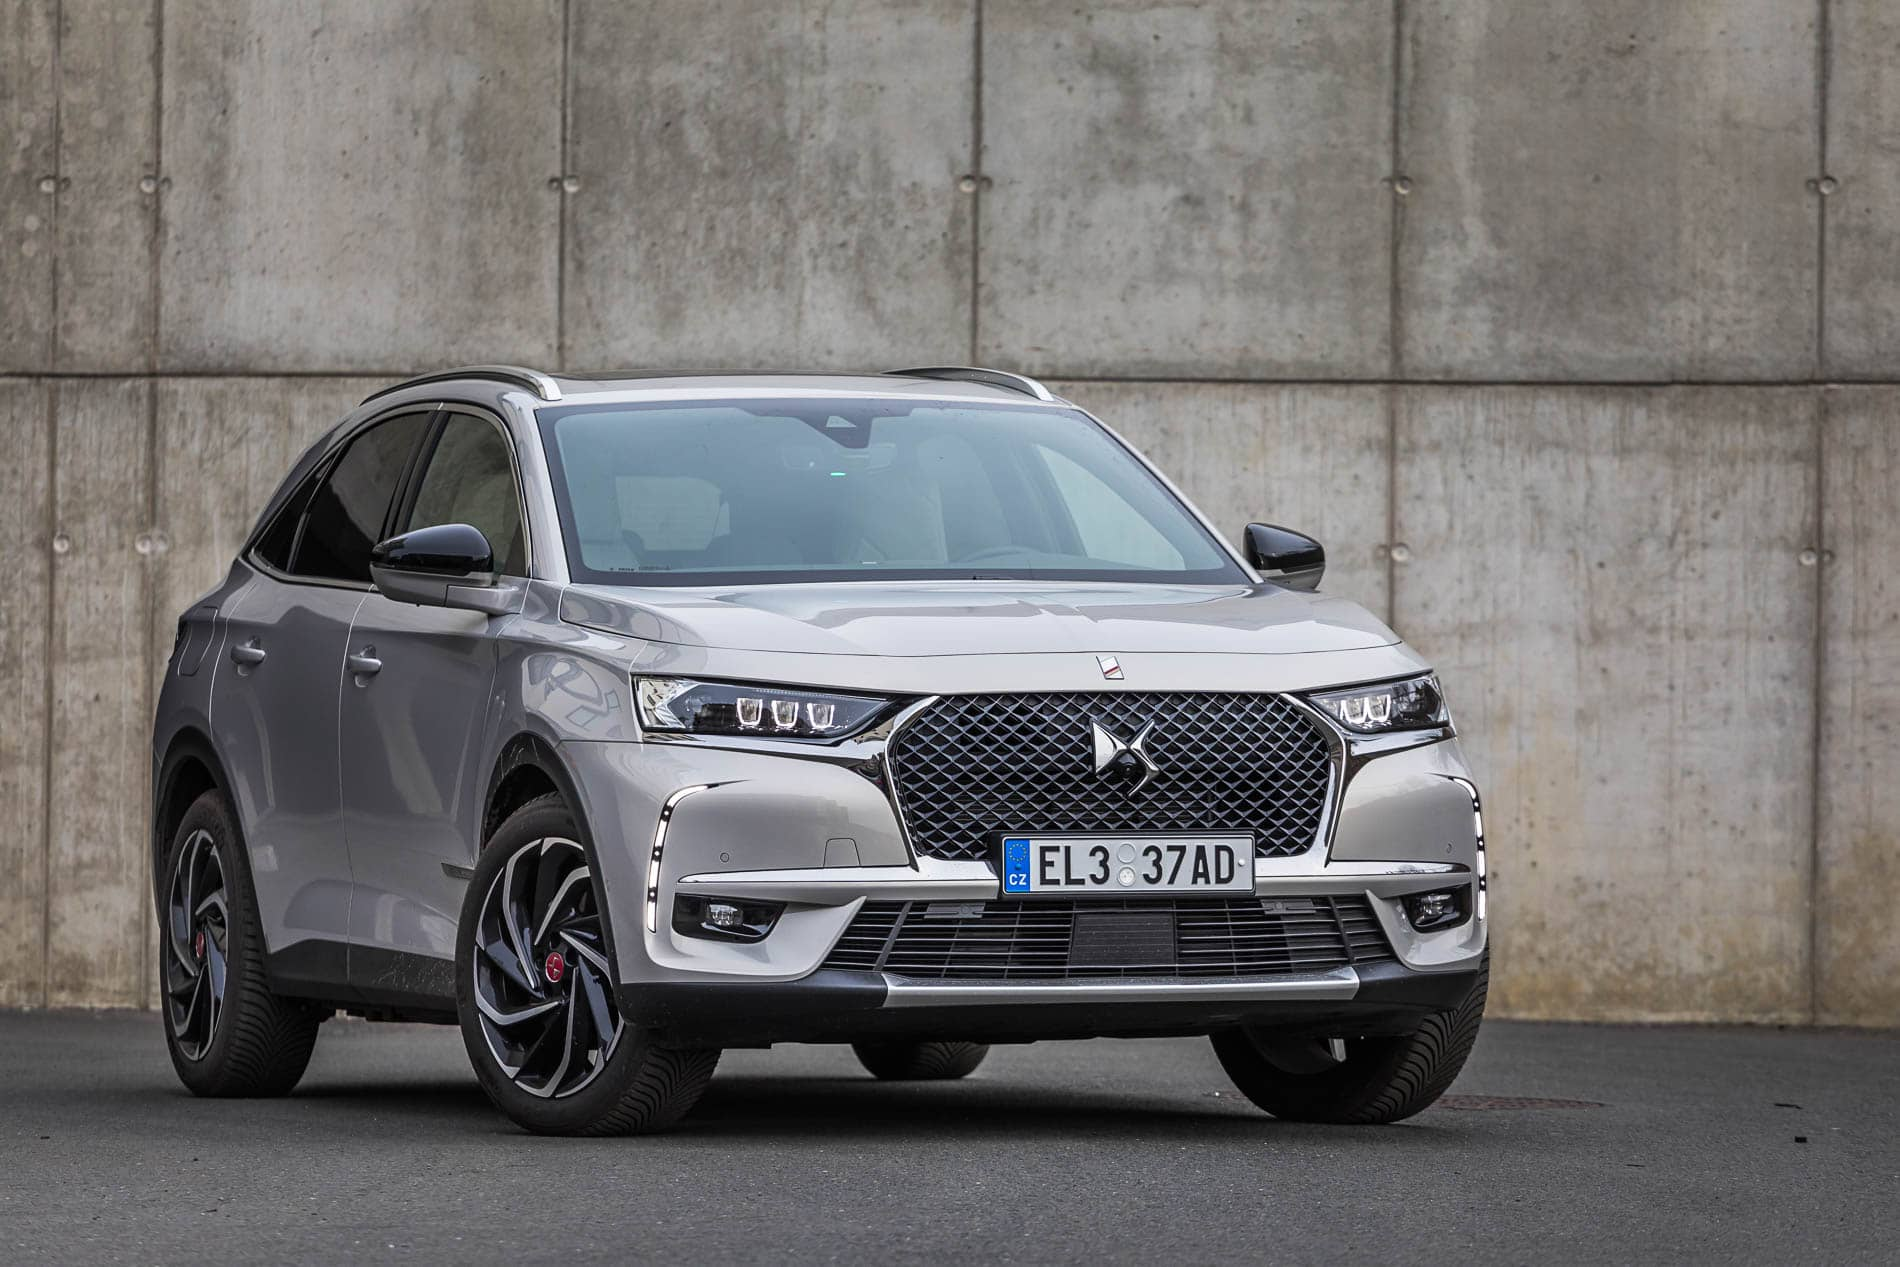 ds7 crossback etense (5)